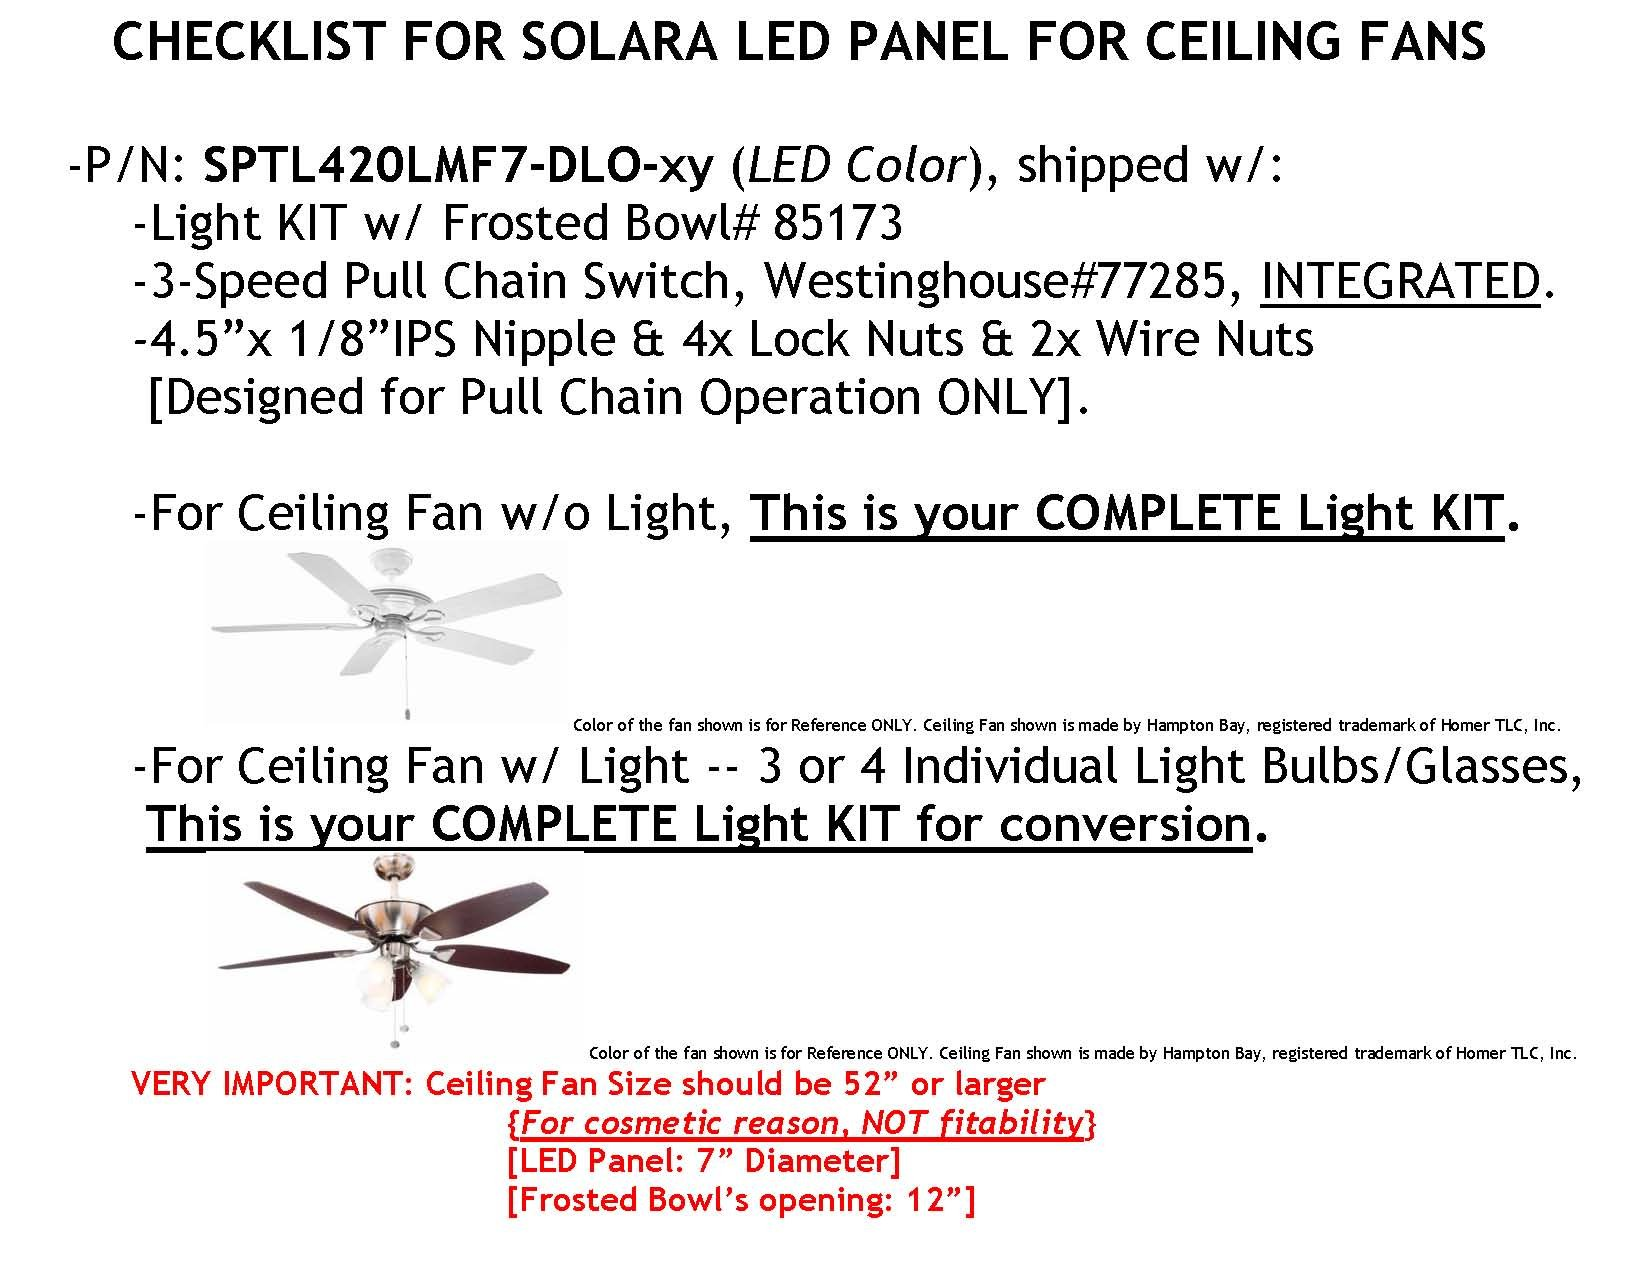 Frosted Glass Bowl w/ LED Panel KIT w/ DUAL LIGHT OUTPUT -- 7'' Diameter -- SOFT WHITE (3000K), 4000lumens 17Watts. For ANTIQUE BRASS Ceiling Fan, P/N: SPTL420LMF7-DLO-SW+KIT#85173-ABR by SOLARA-USA (Image #6)